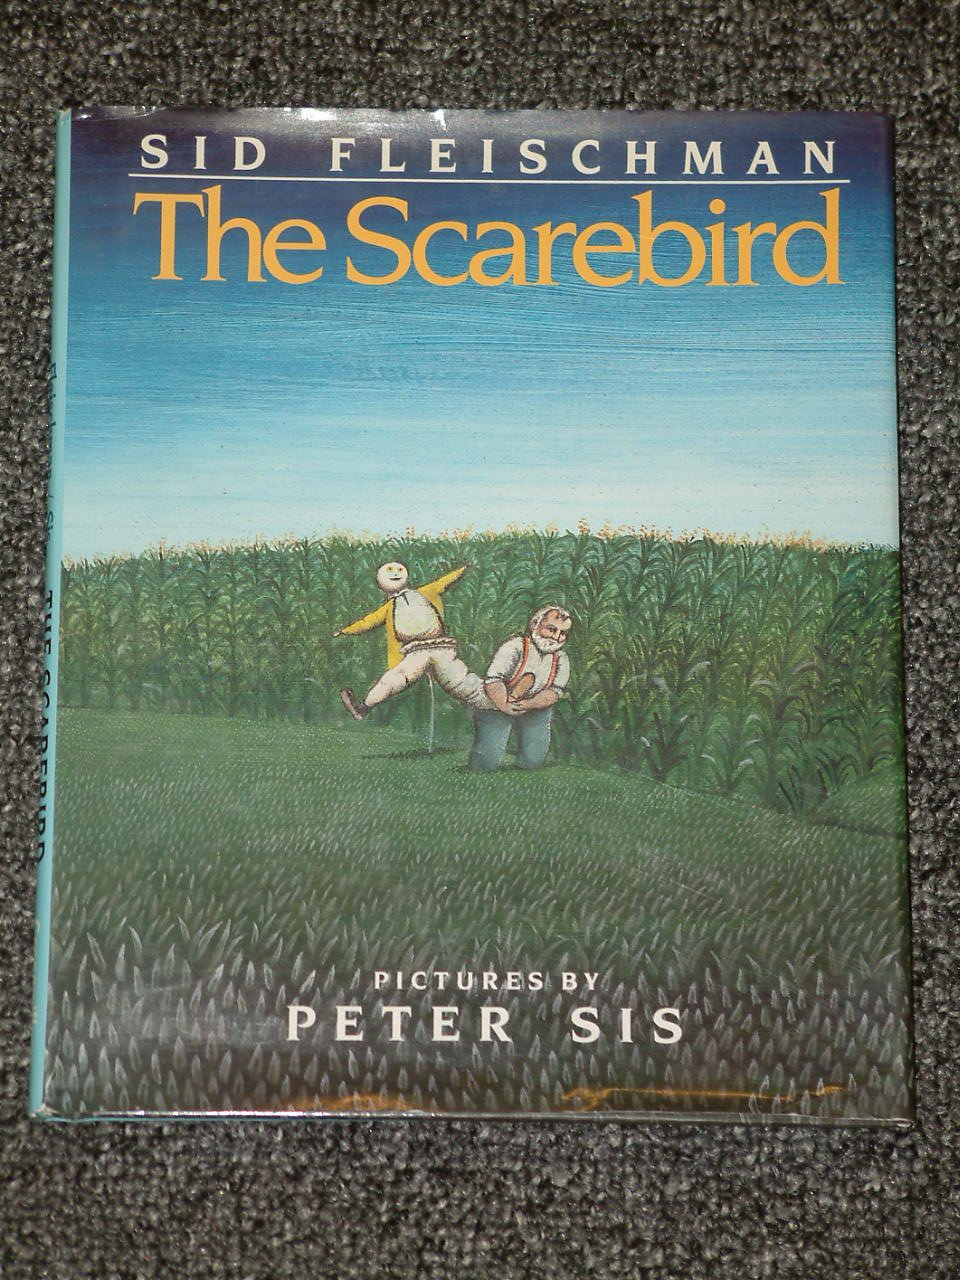 The Scarebird by Sid Fleischman and Peter Sis HB DJ